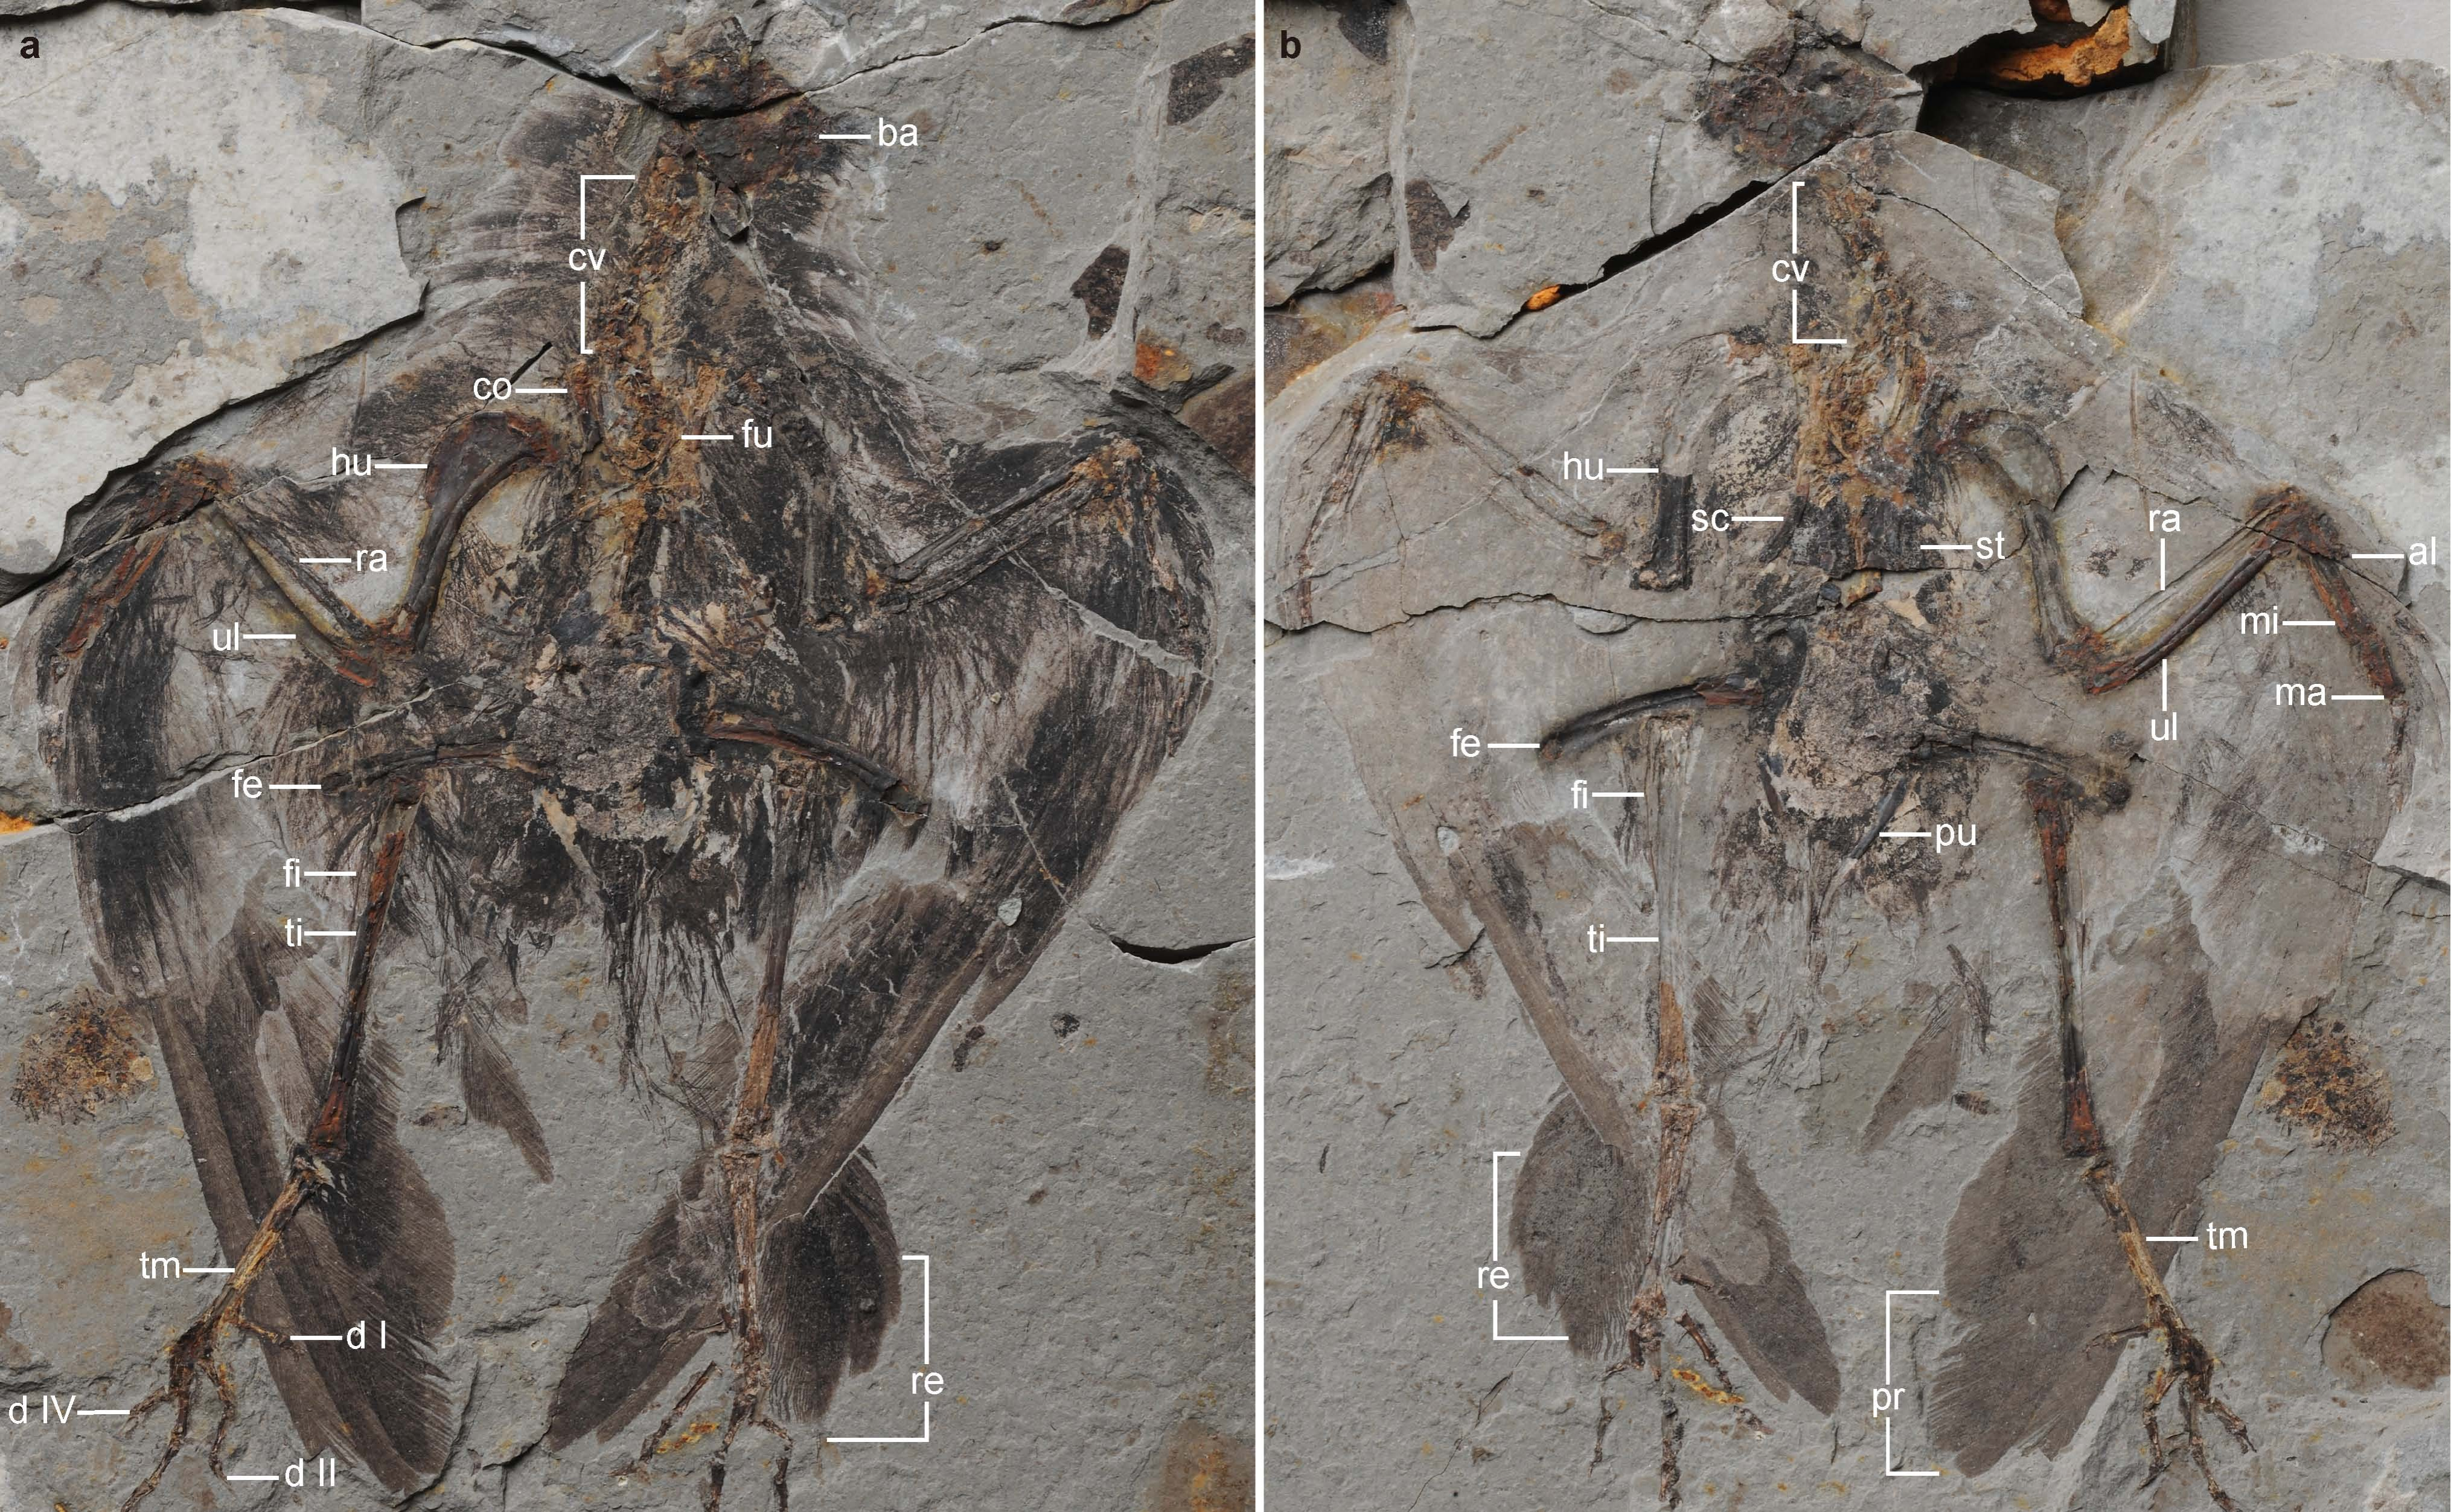 Holotype of Archaeornithura meemannae, the oldest ancestor of modern birds has been dug up in China which evolved almost six million years earlier than previously thought.